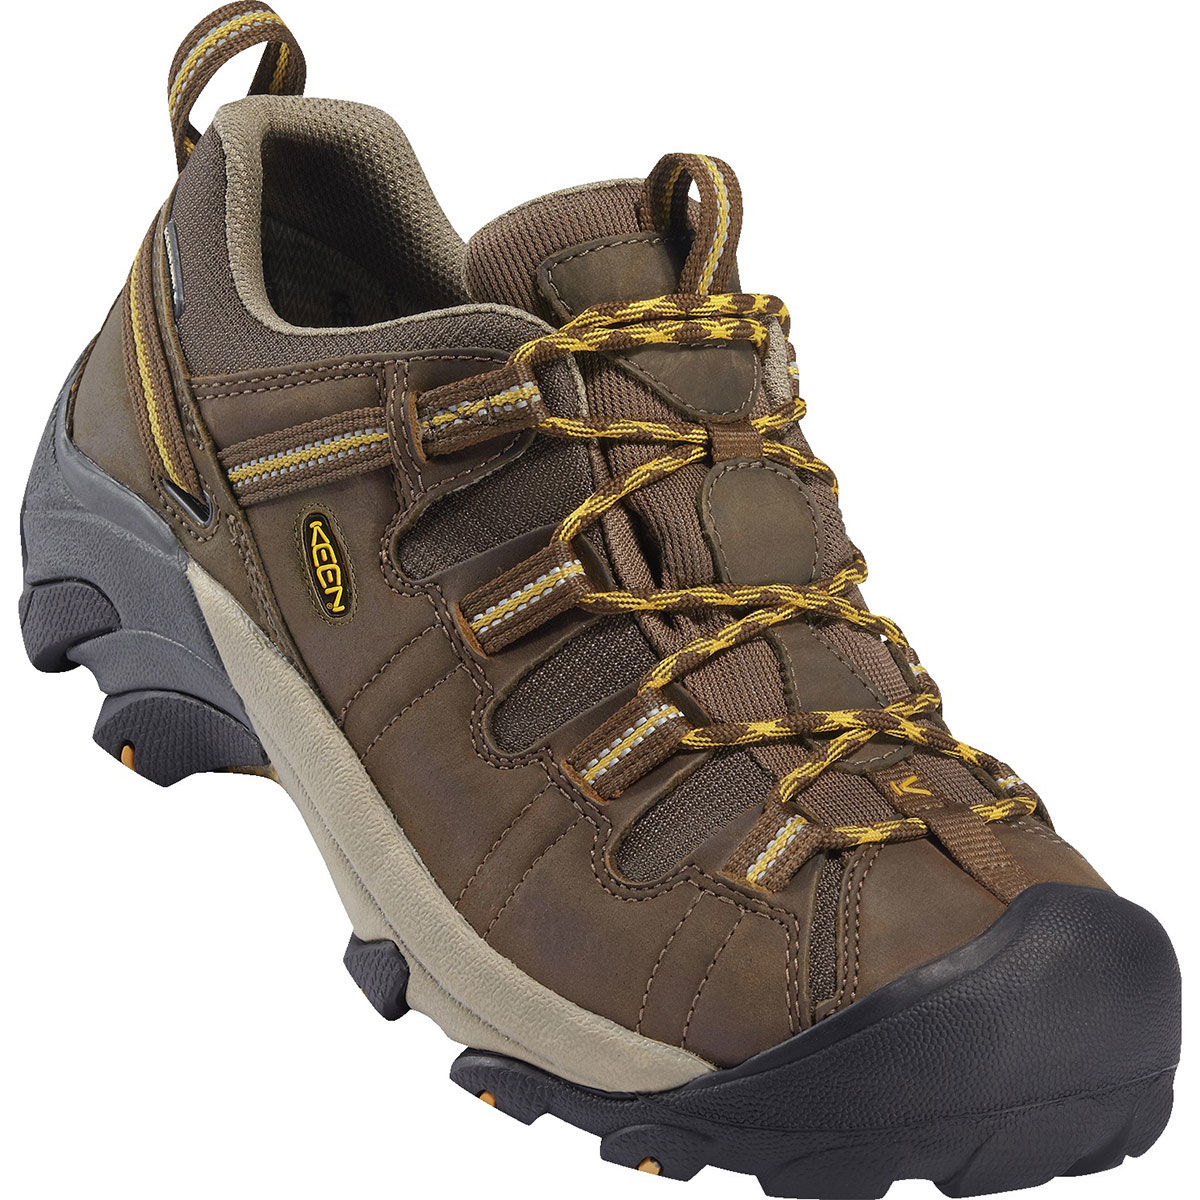 Keen Men's Targhee Ii Waterproof Low Hiking Shoes, Wide - Brown, 10.5